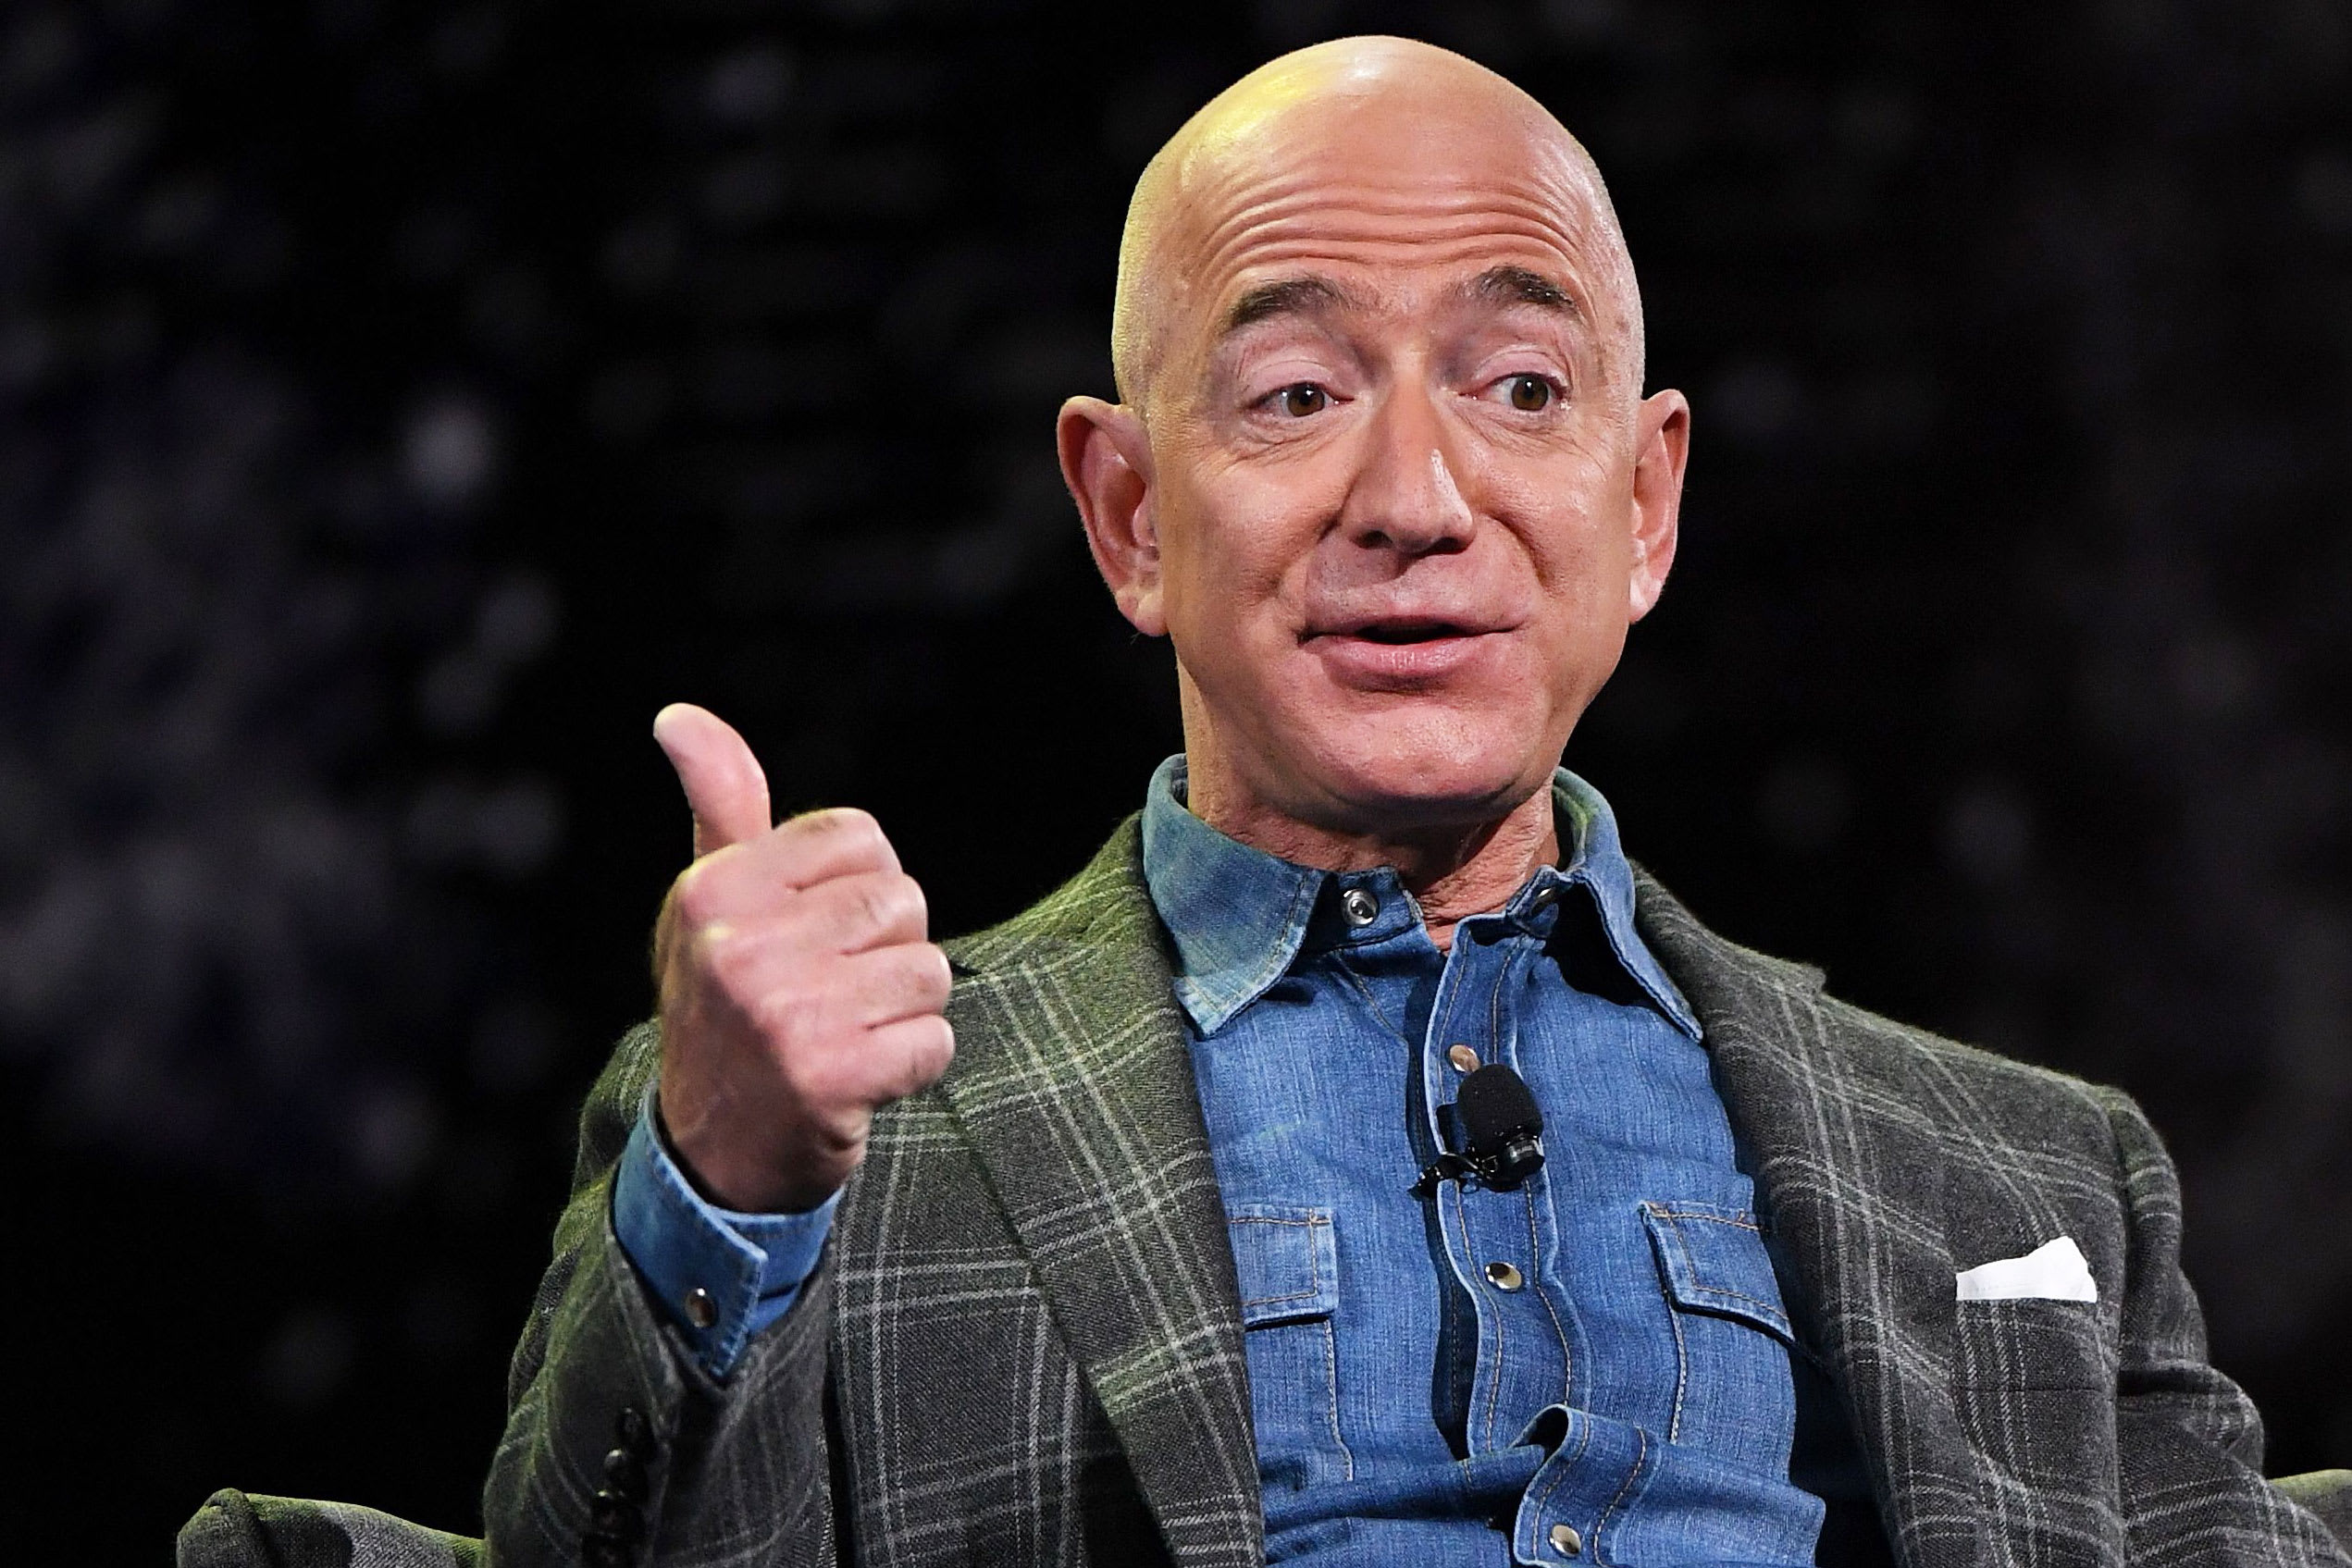 Jeff Bezos named businessperson of the decade by global finance chiefs, CNBC survey says